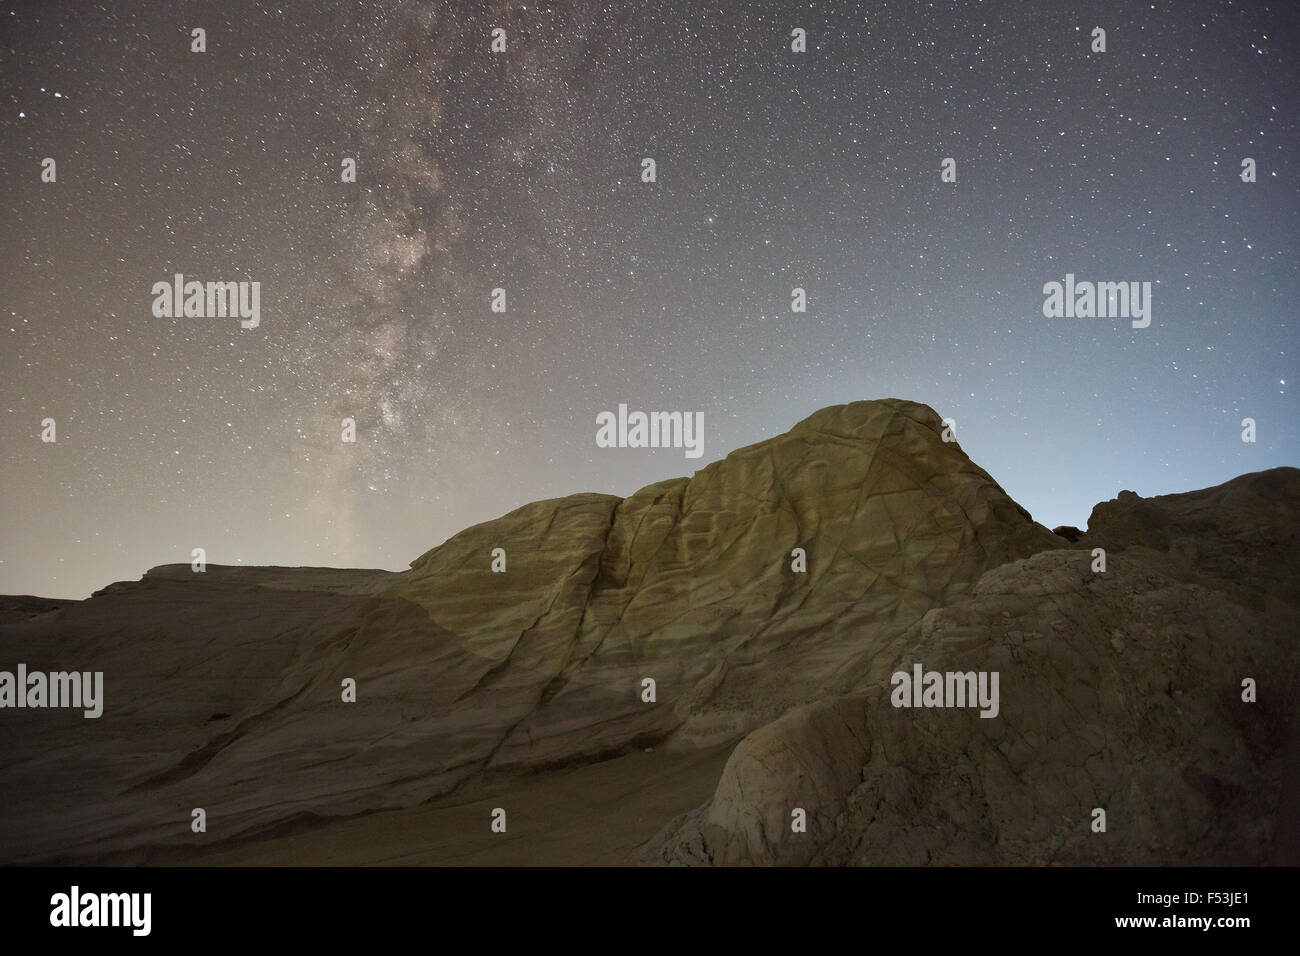 Night photograph of volcanic rock formations nearby Sarakiniko beach in the north of Milos island, Greece. - Stock Image